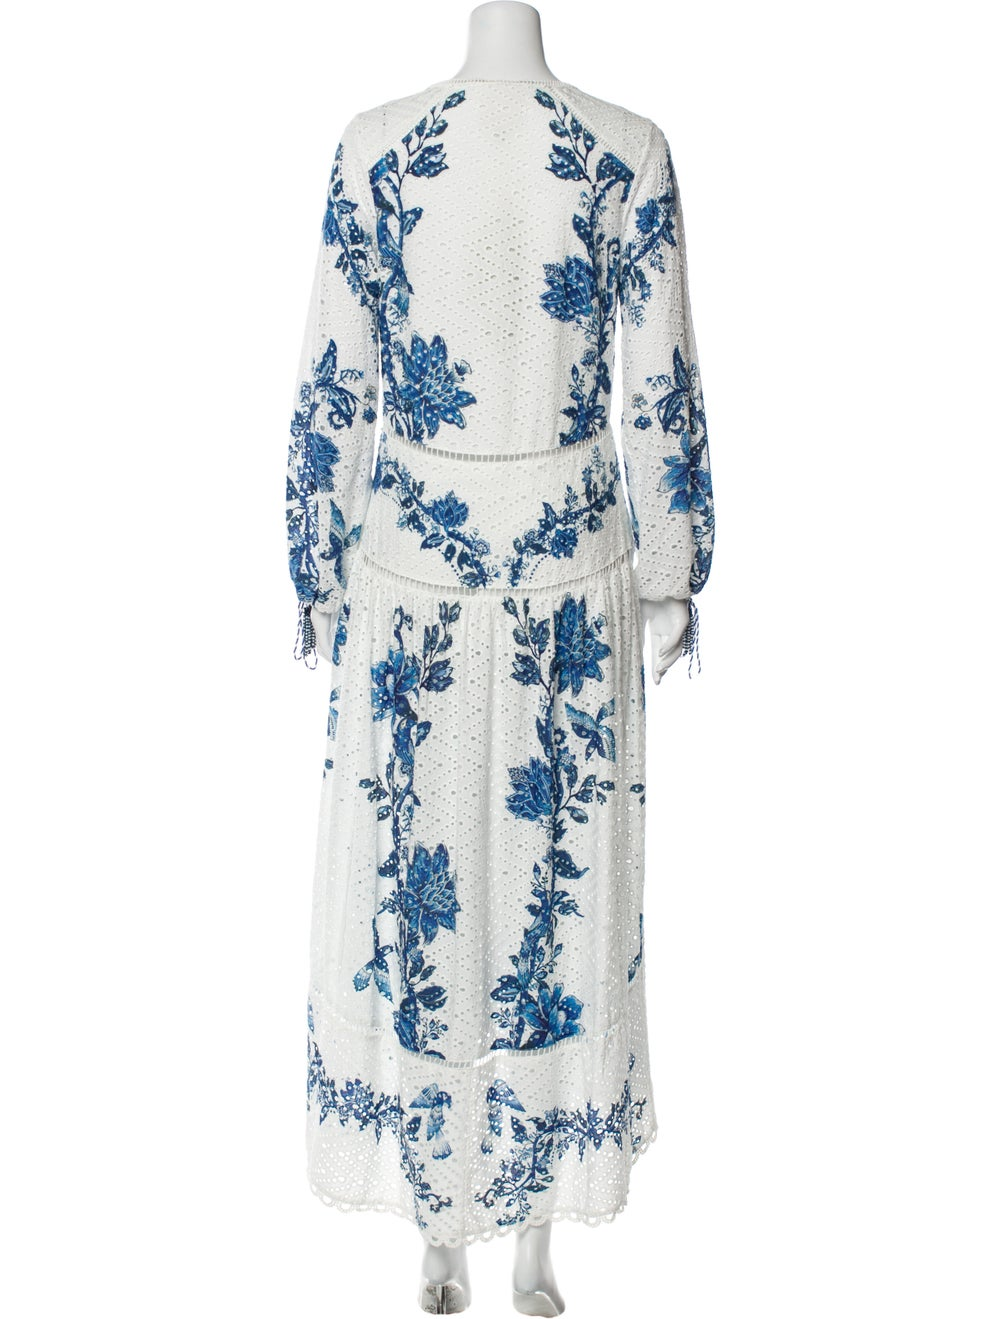 Farm Rio Printed Long Dress White - image 3